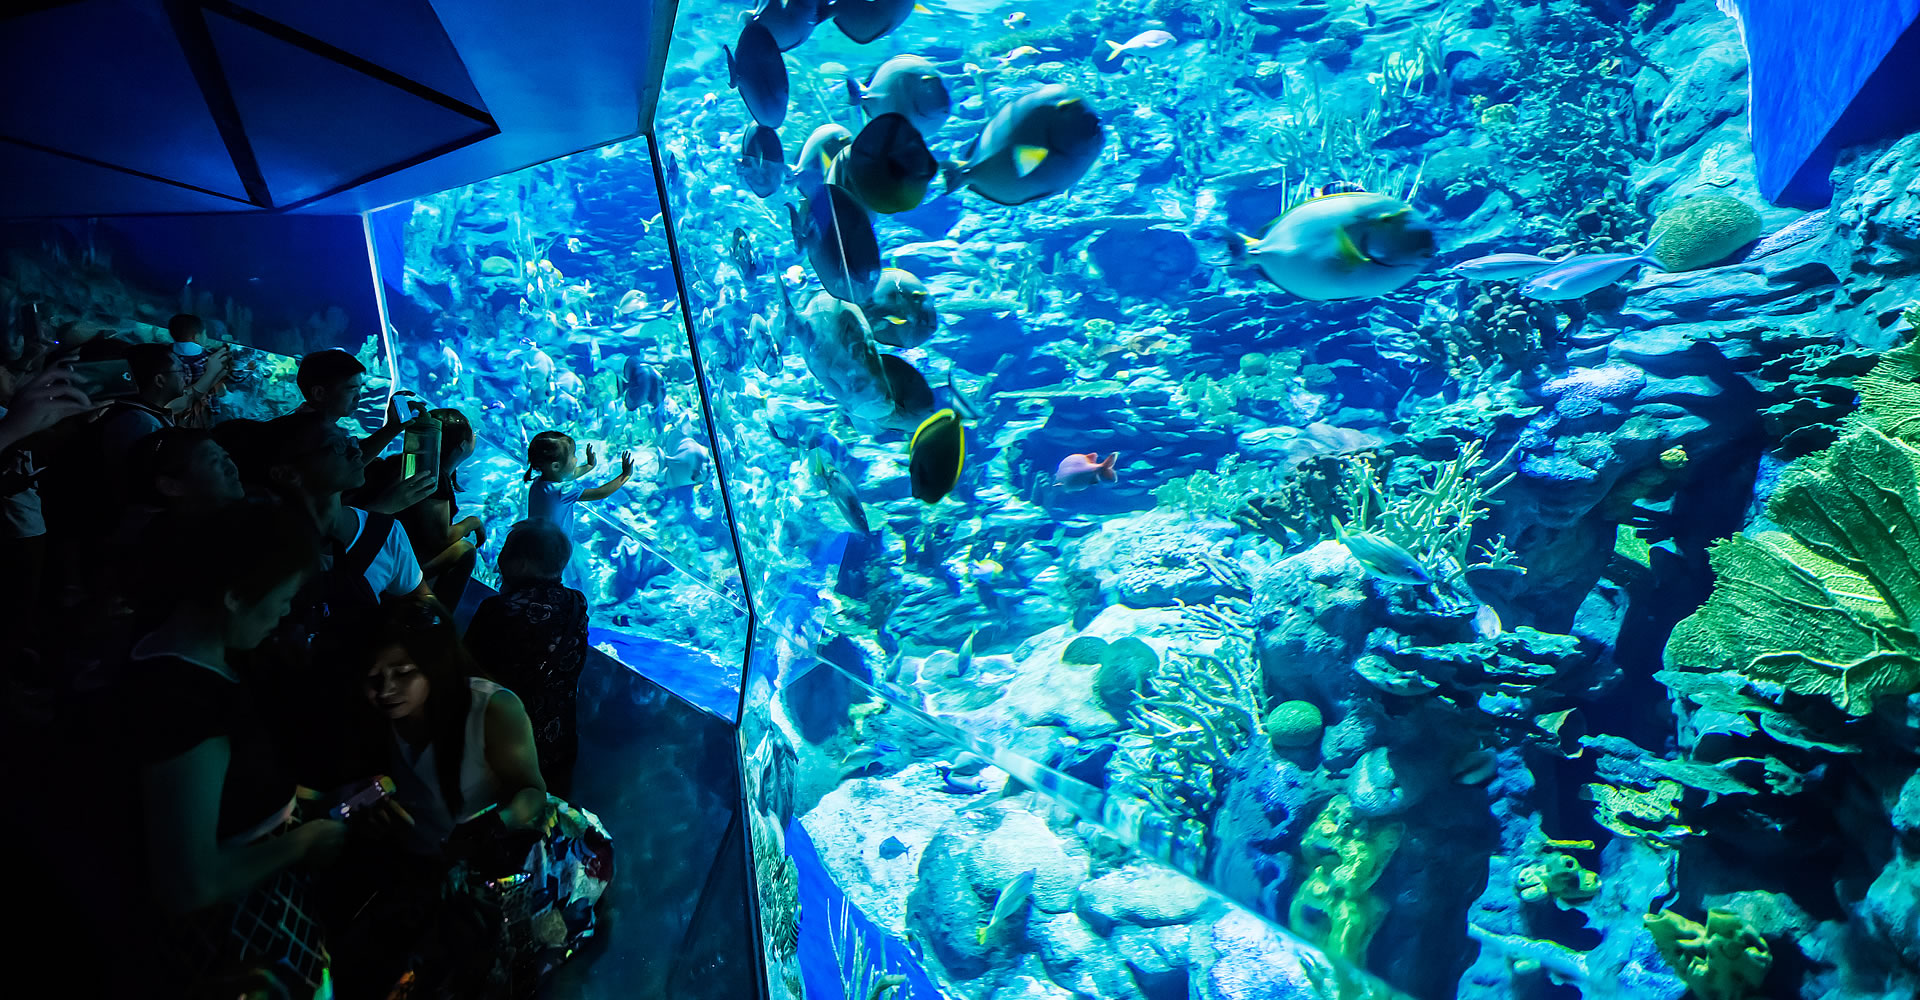 https://media.oceanpark.com.hk/files/s3fs-public/GrandAquarium_02.jpg